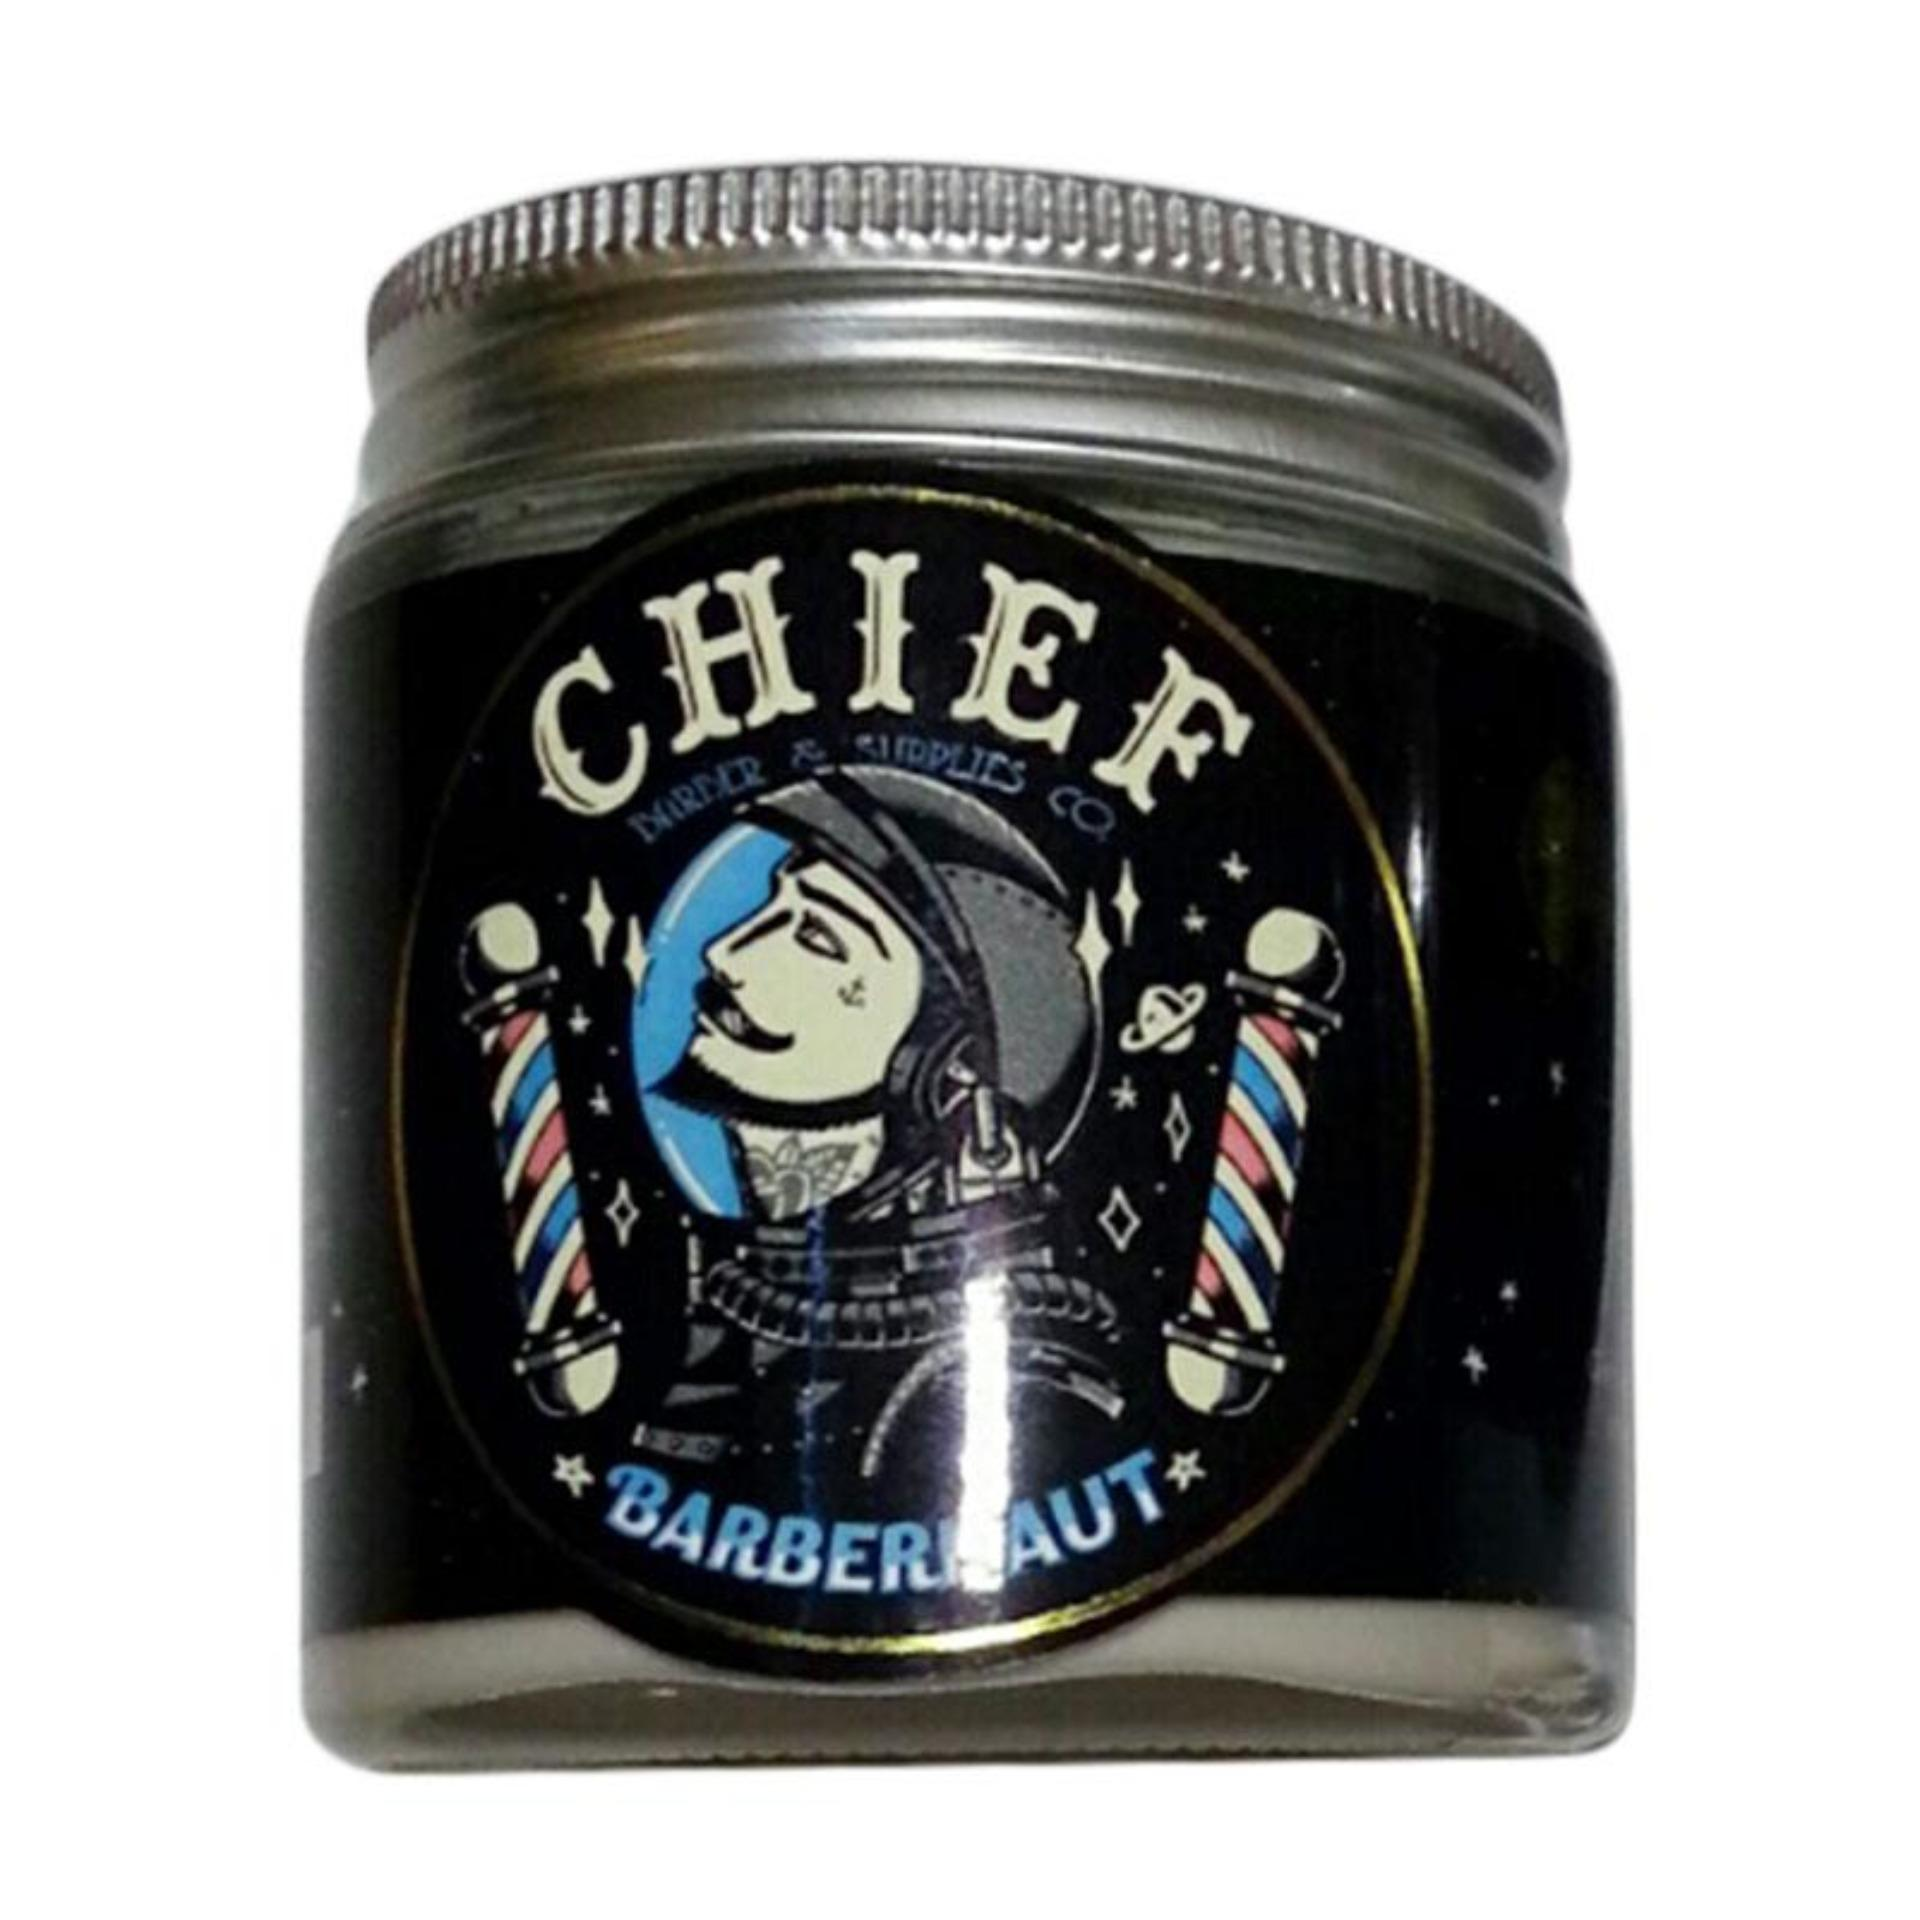 DISKON..! POMADE CHIEF BARBERNAUT SPACE CLAY STRONG HOLD 4.2 OZ Terbaik